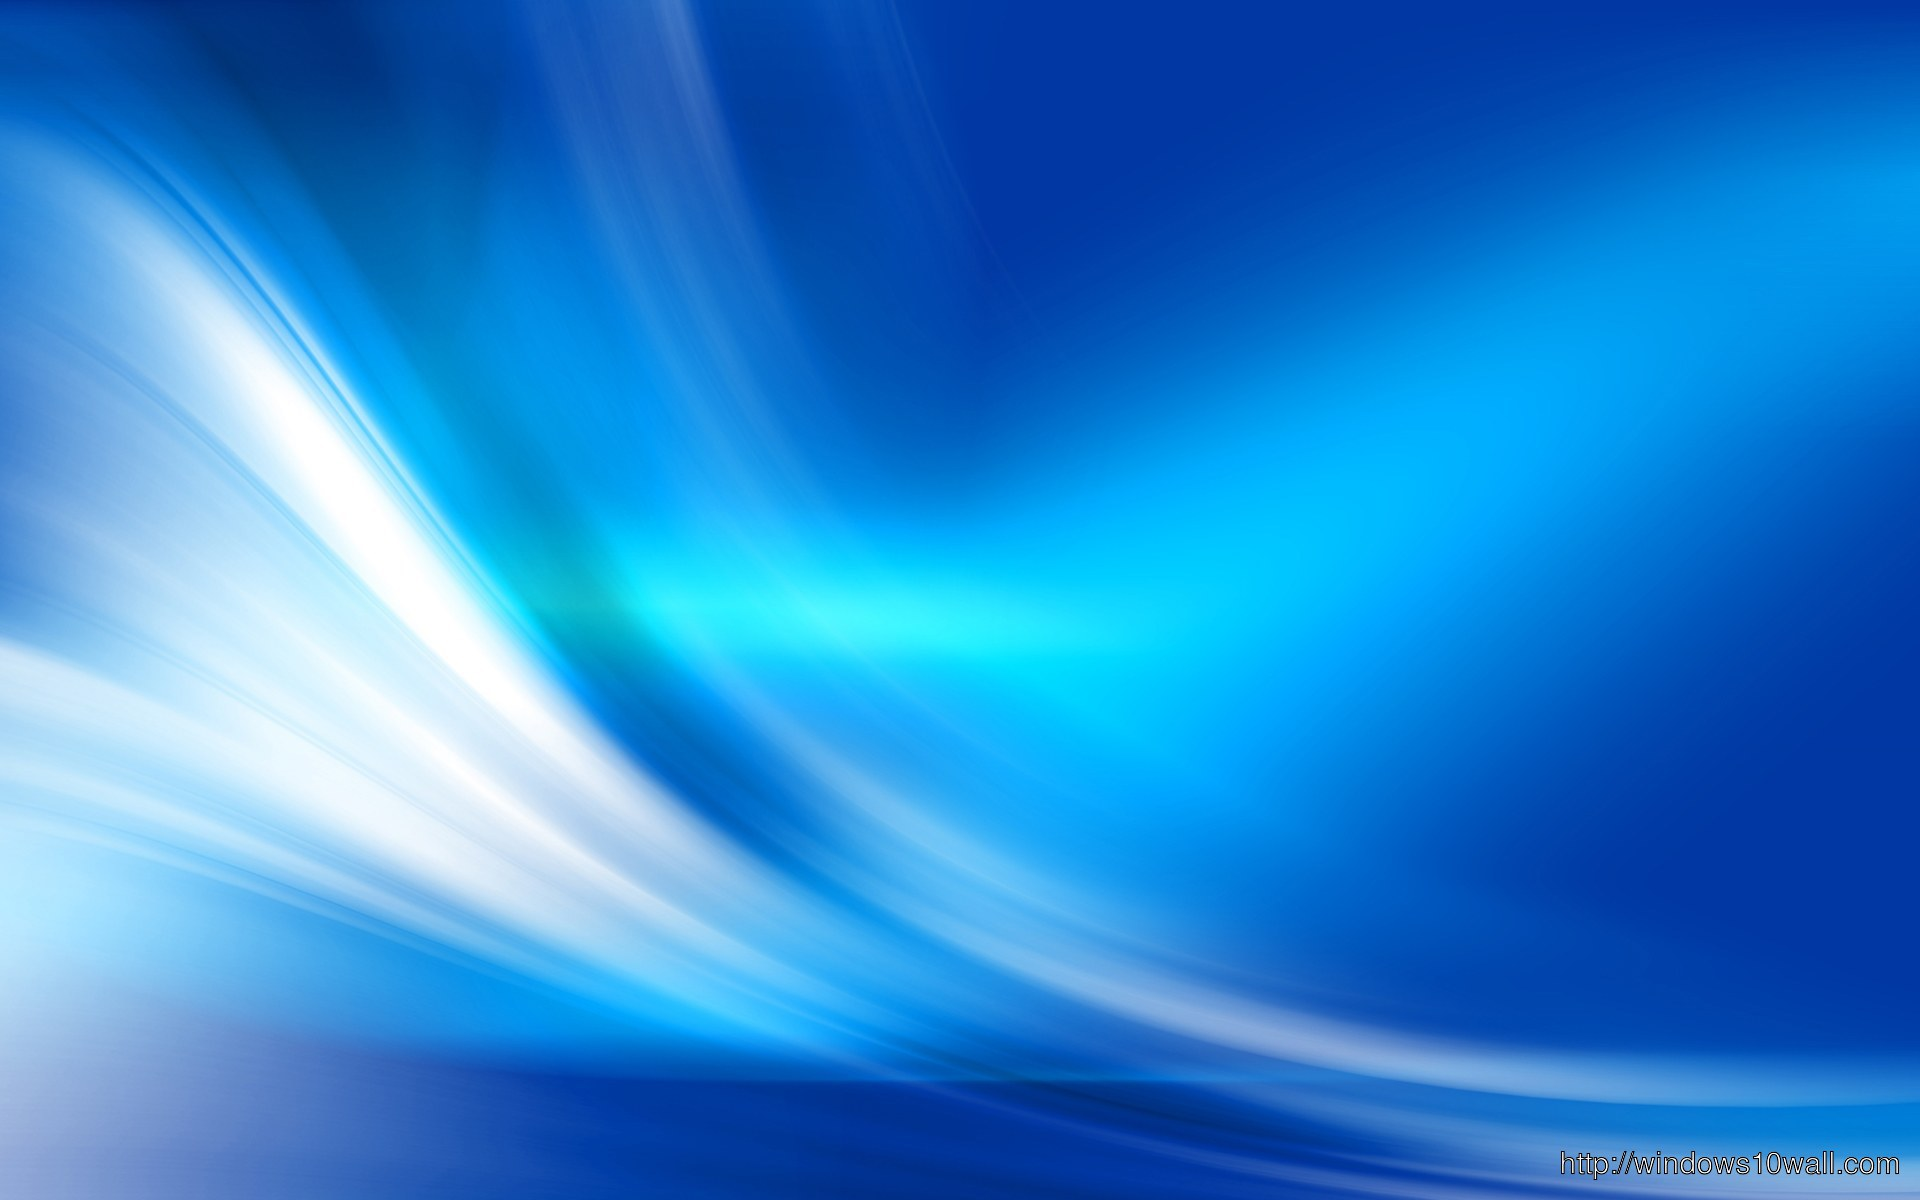 Hd Abstract Blue Background: Corporate Blue Background Free Download